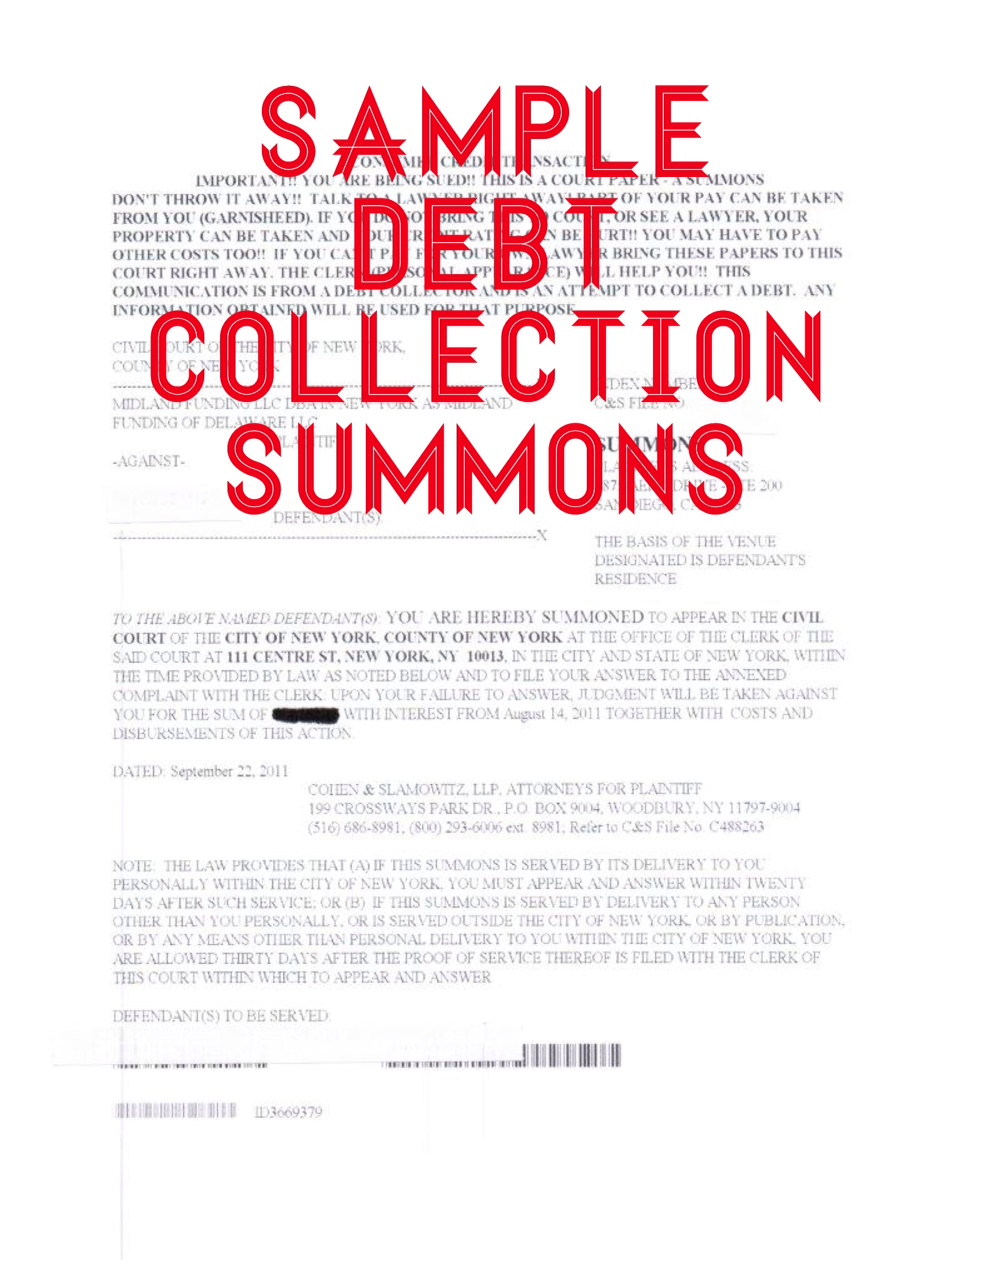 How To Answer A Summons And Complaint In A Debt Collection Lawsuit